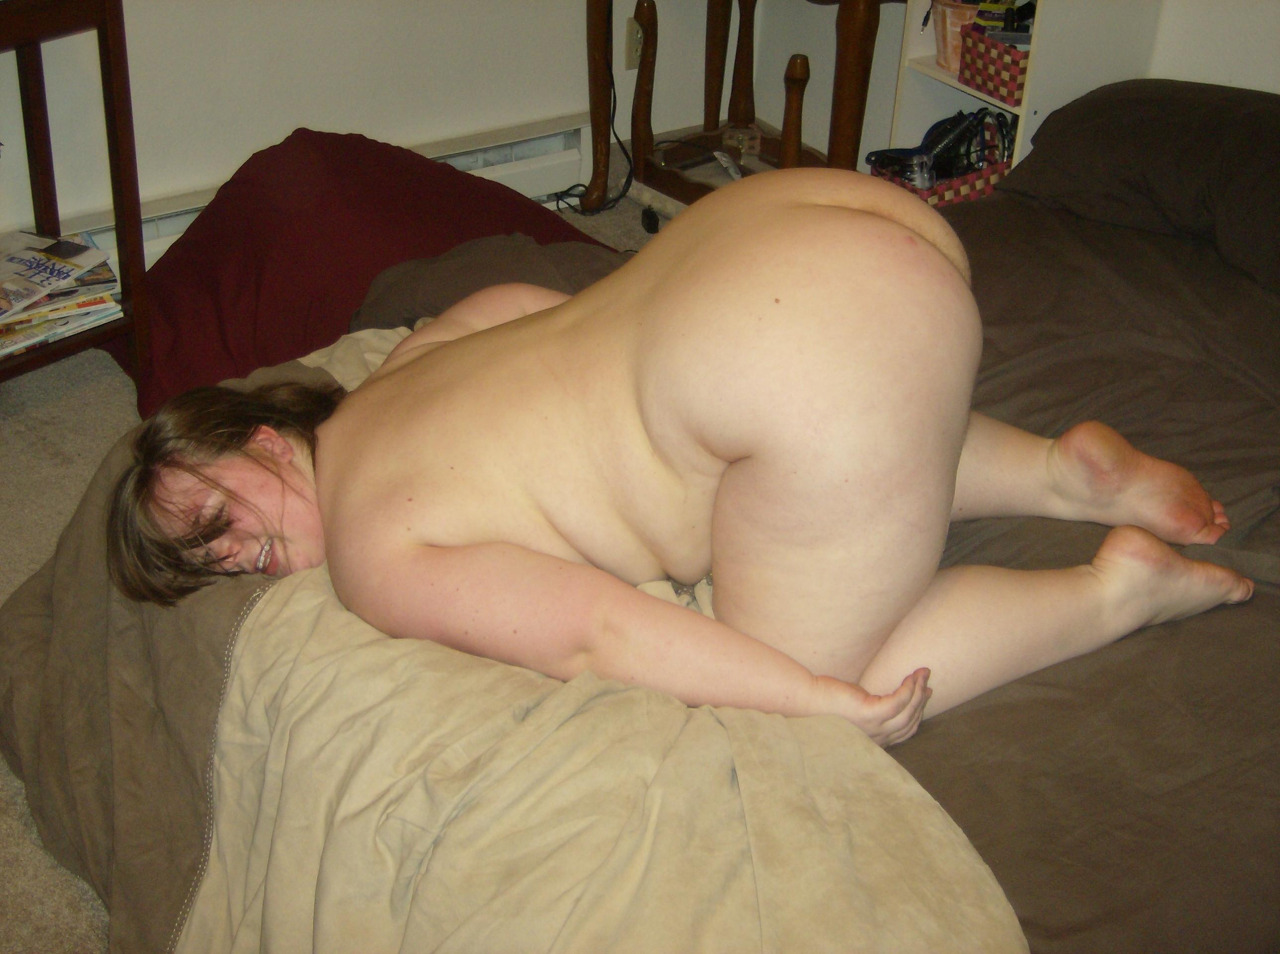 fat-women-sleeping-sex-image